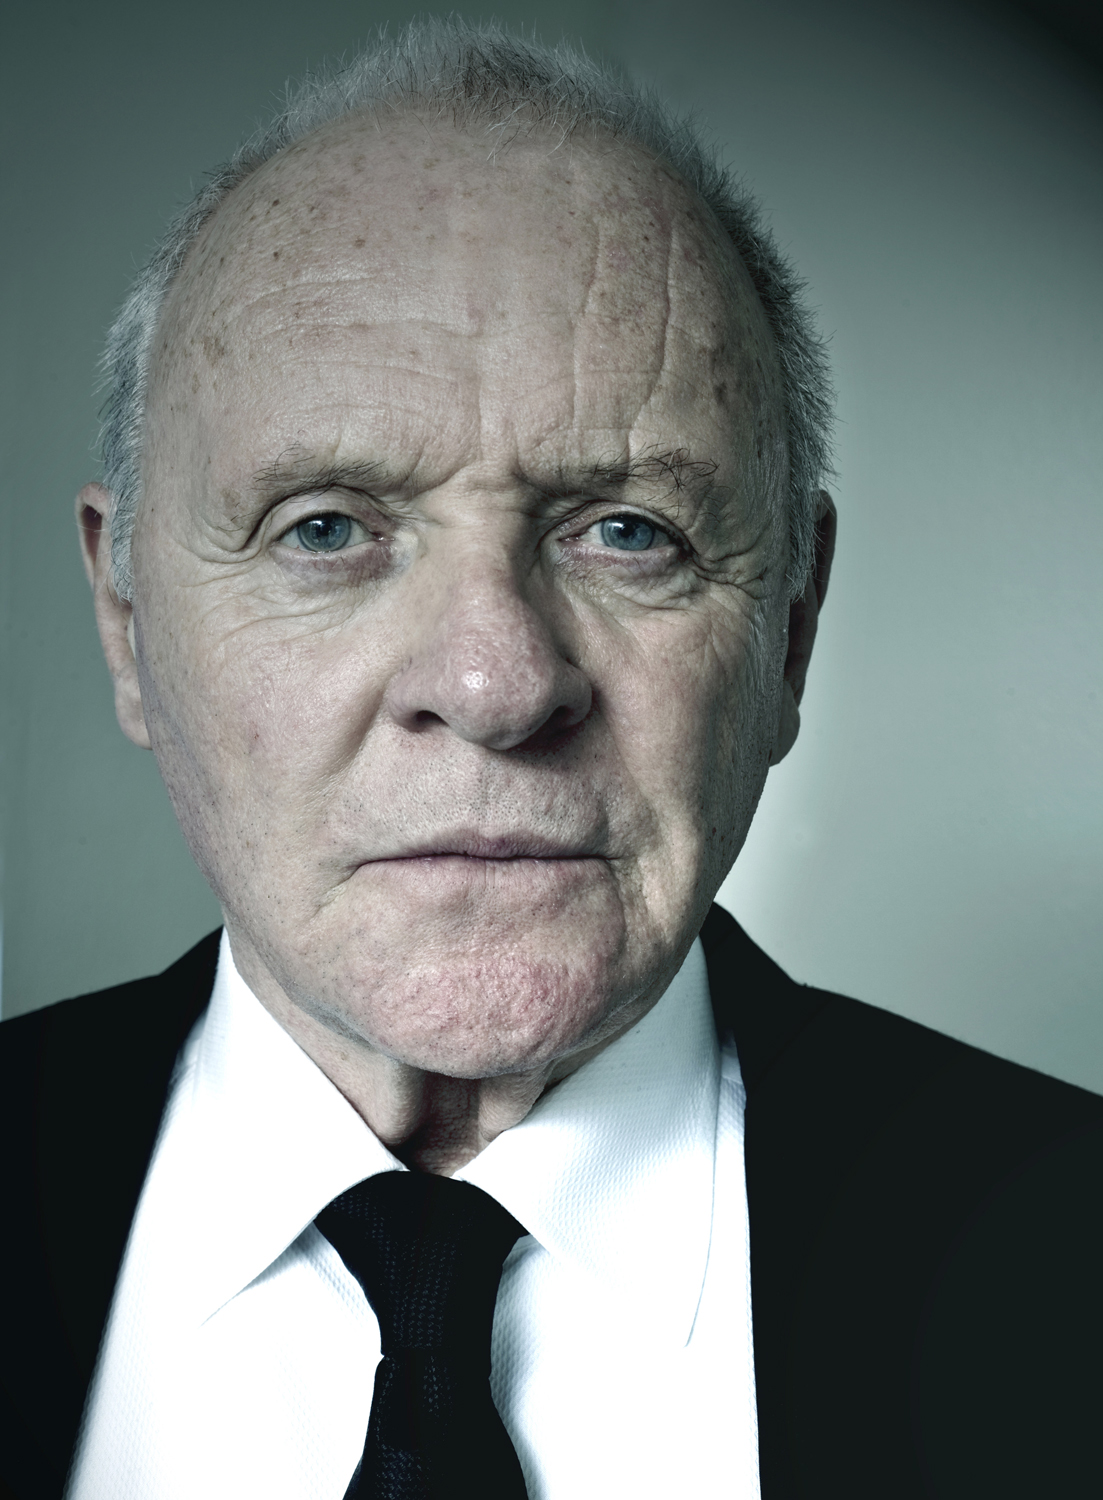 foto Anthony Hopkins (born 1937 (naturalized American citizen)